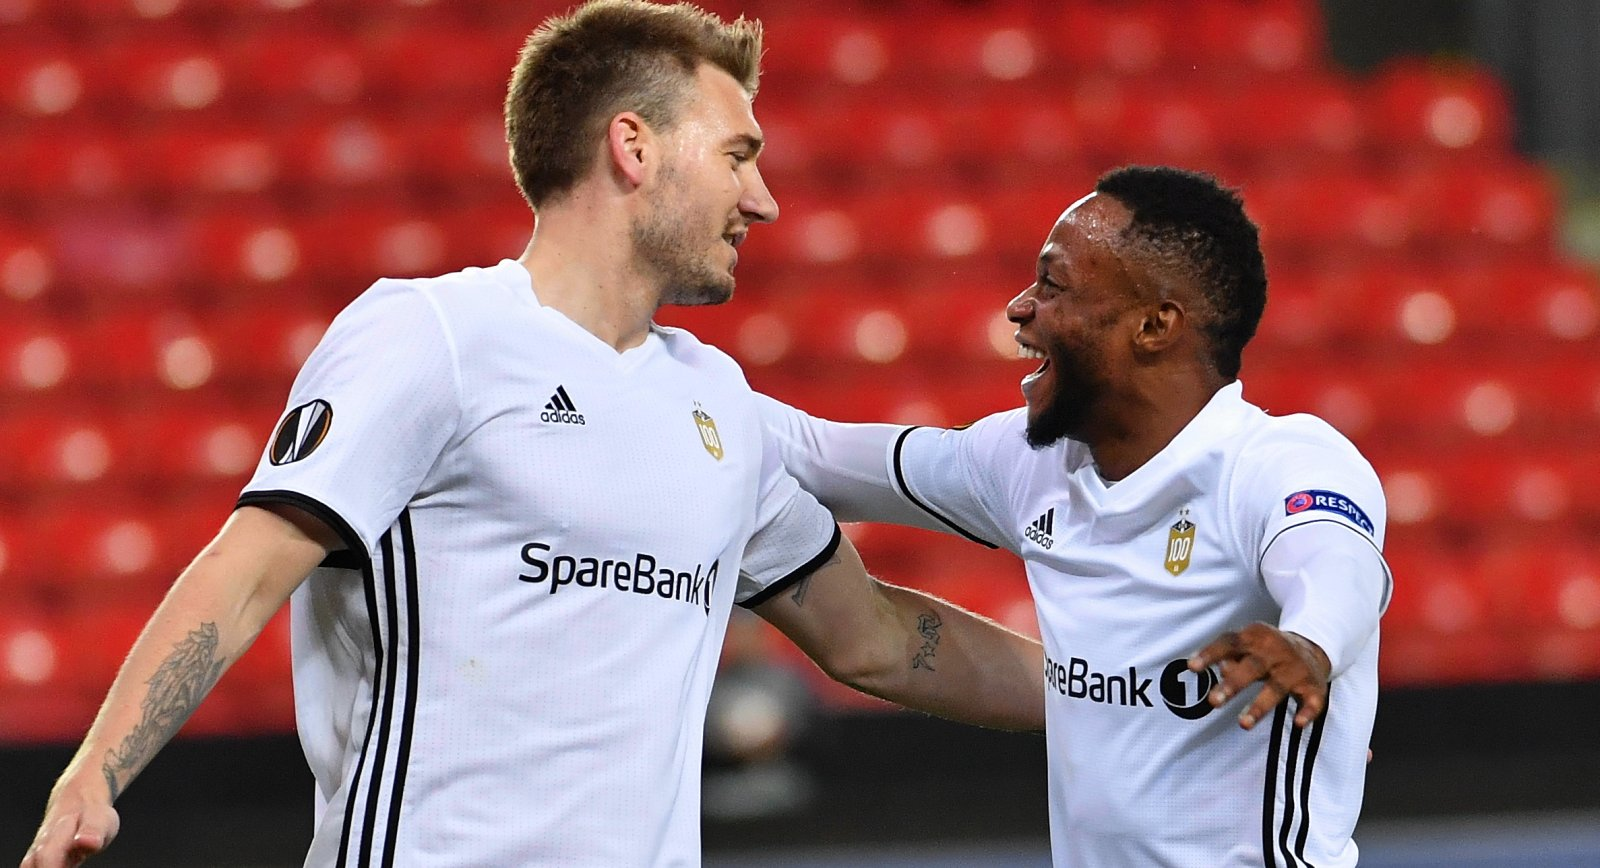 UCL Qualifying: Adegbenro Helps Rosenborg BK Reach Playoffs; Azubuike, Esiti, Akpom Ousted